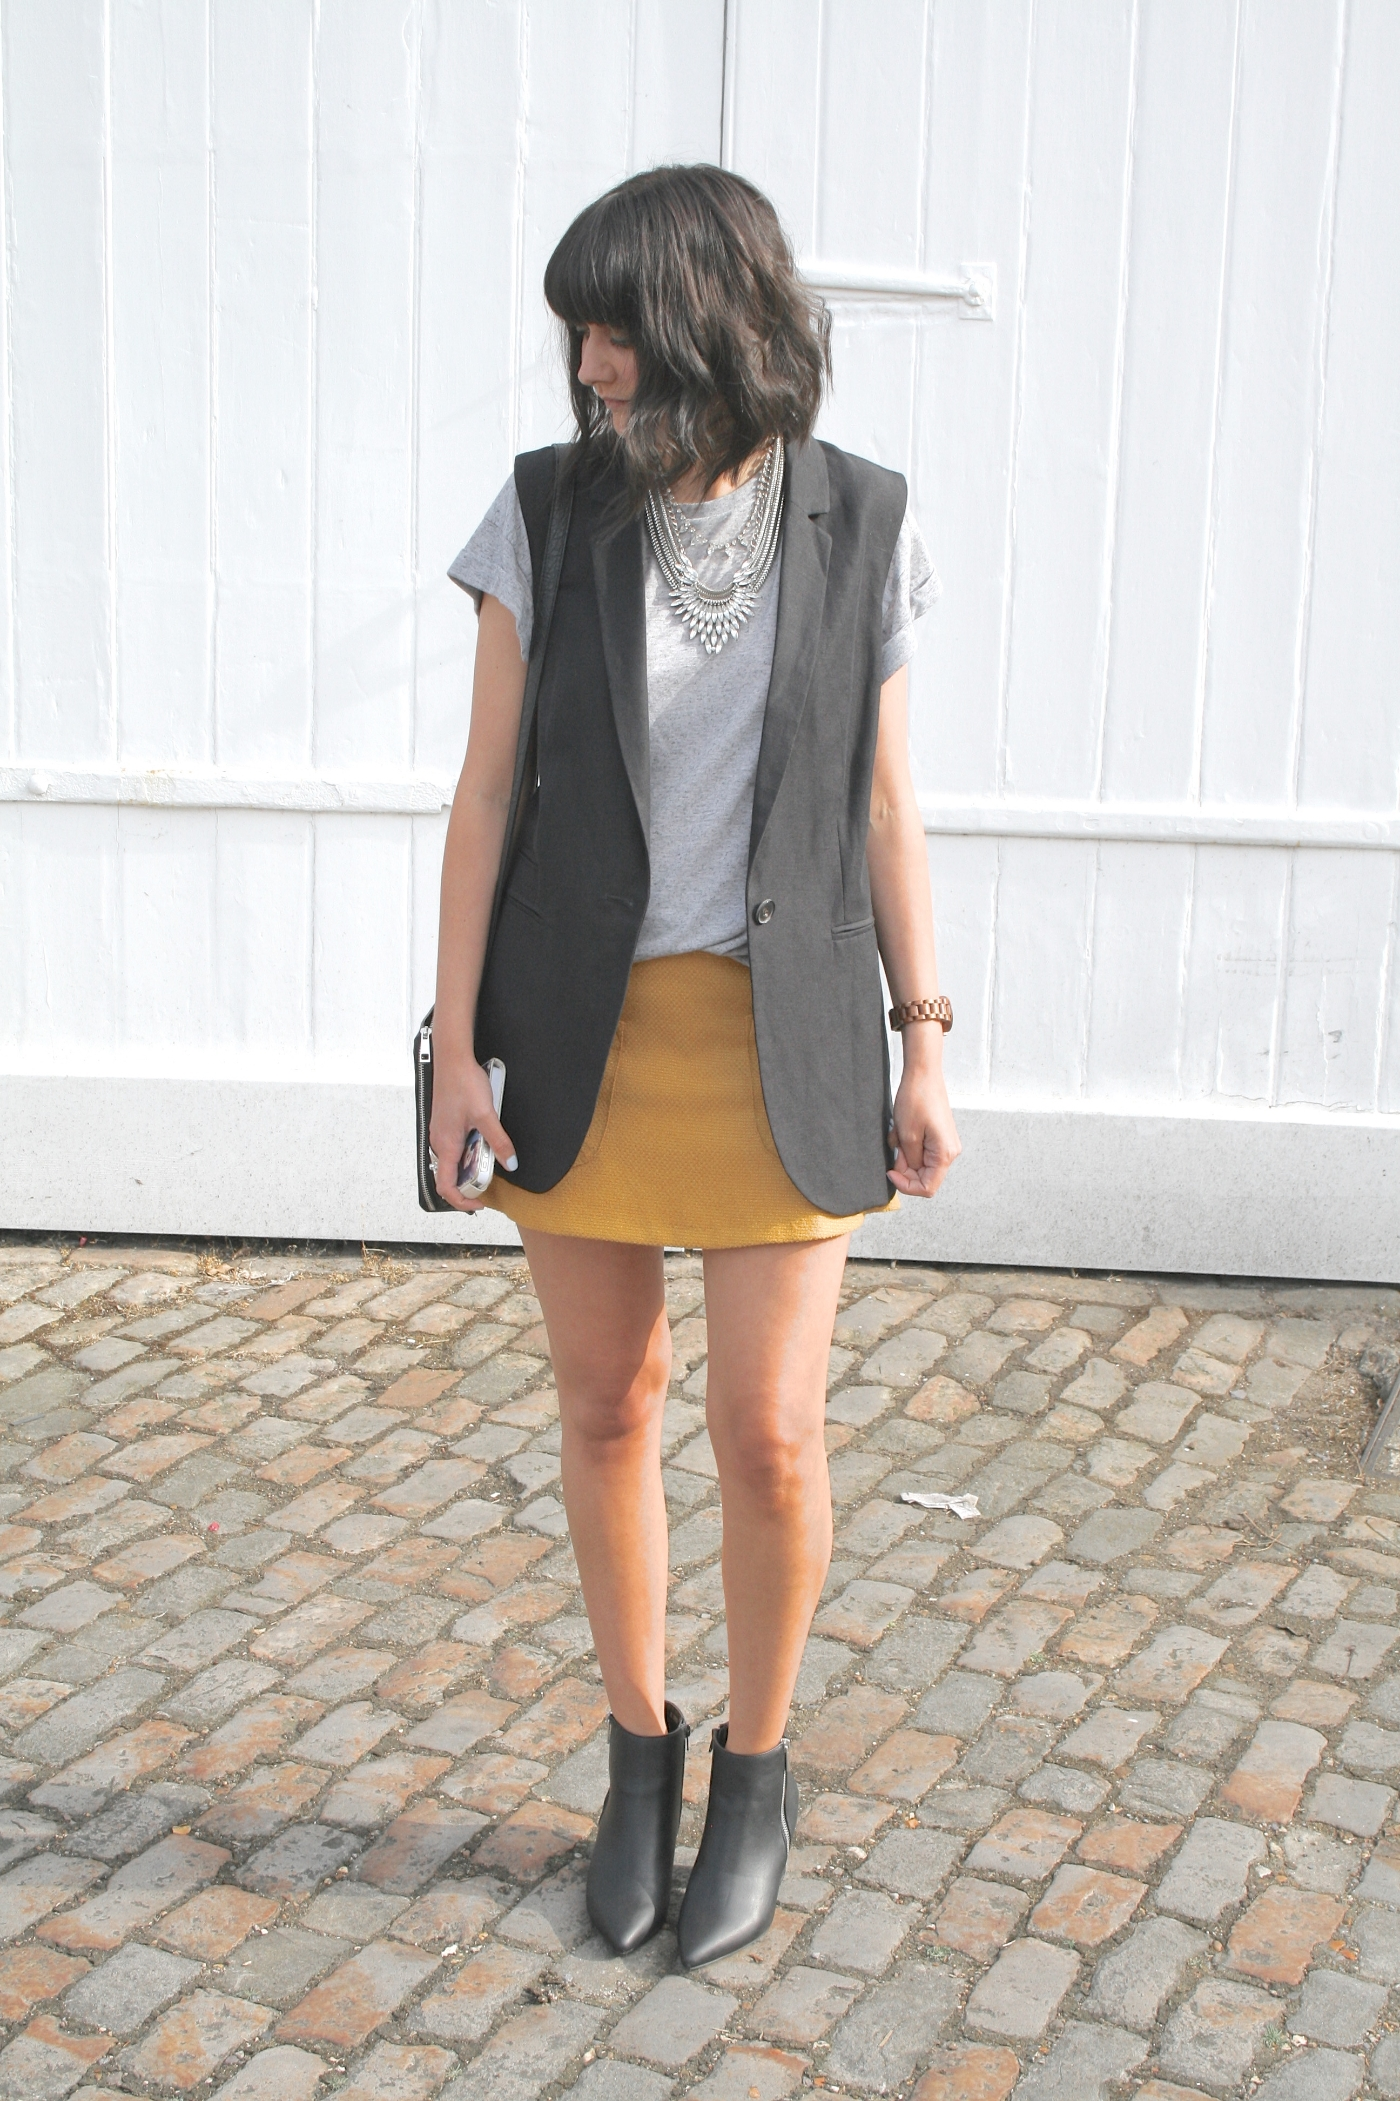 black waistcoat, grey tshirt and yellow skirt